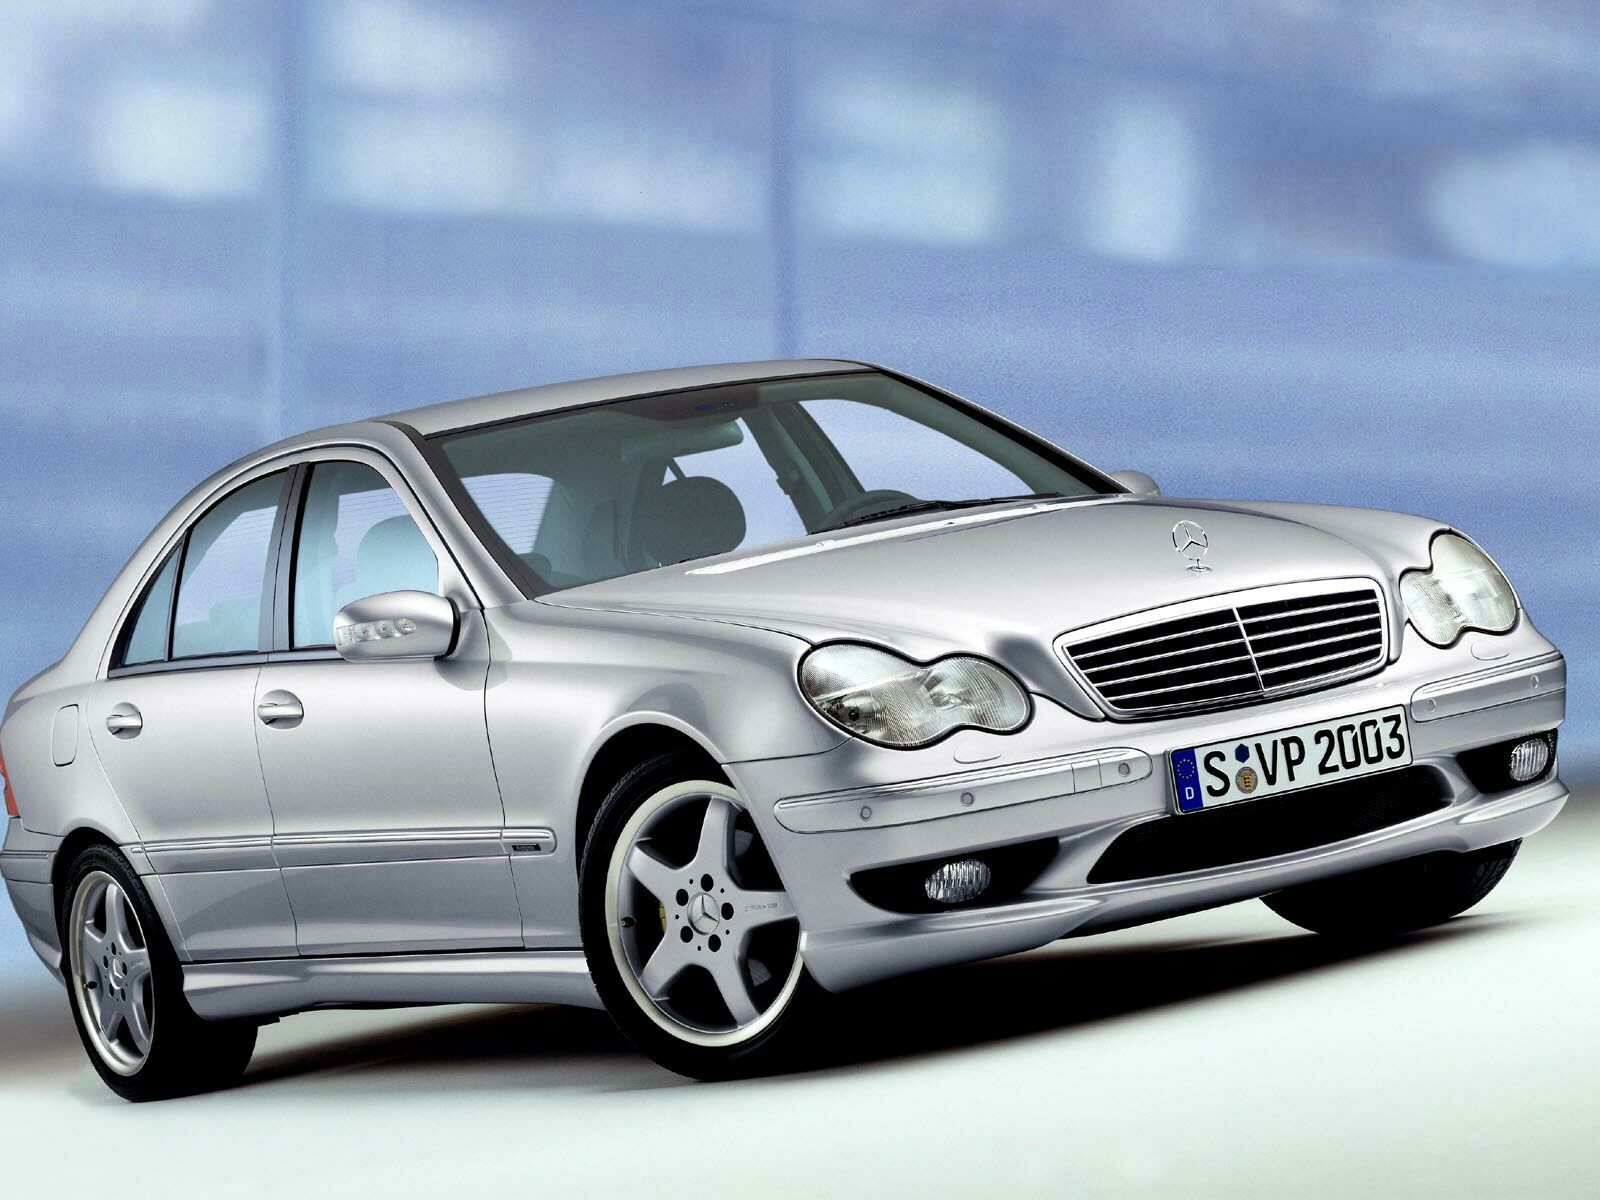 mercedes benz c class w203 photos photo gallery page 2